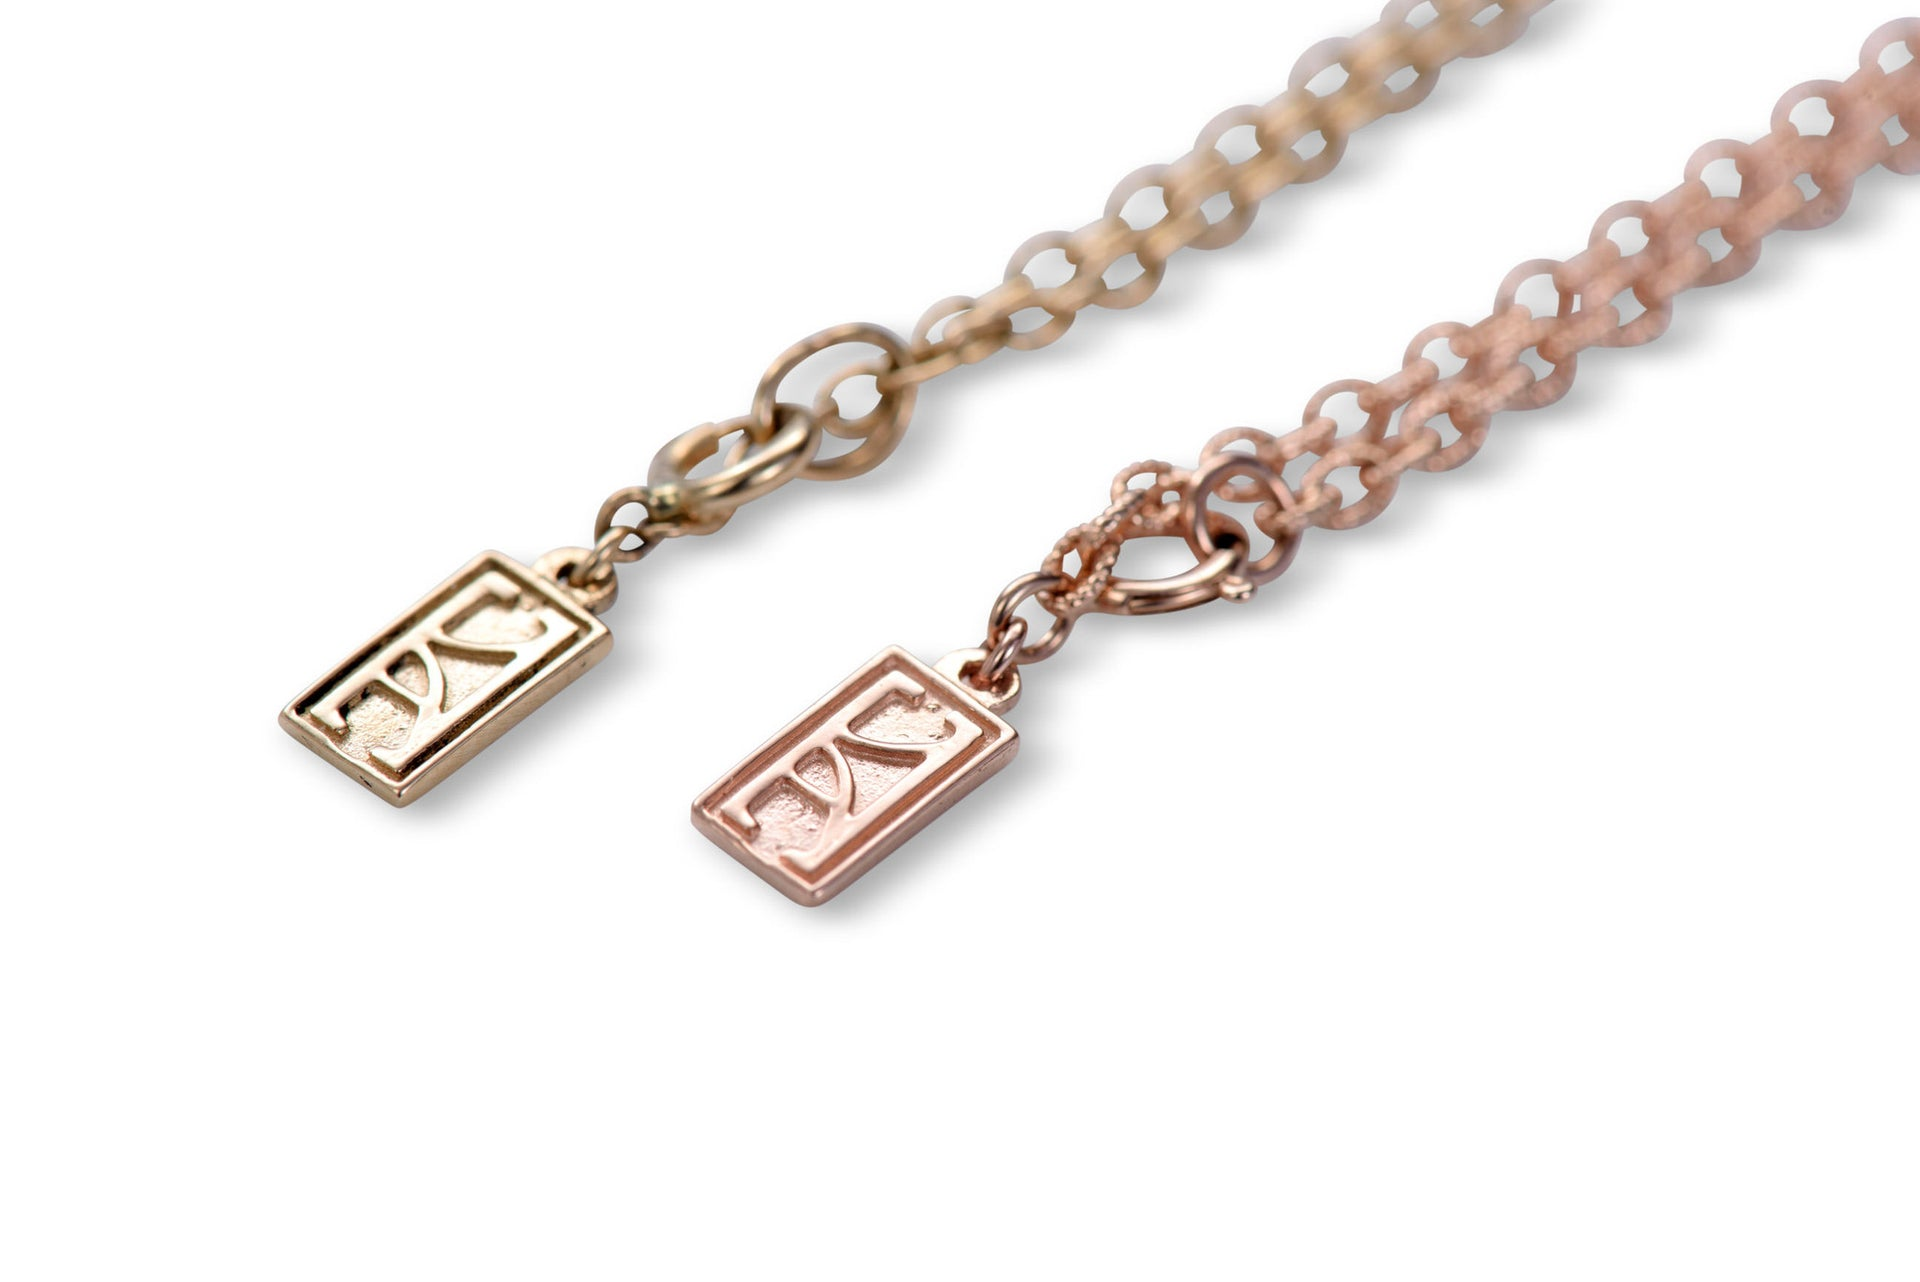 LUXE Deco pendant 14 KT Rose Gold Choker by KarenAsh New York